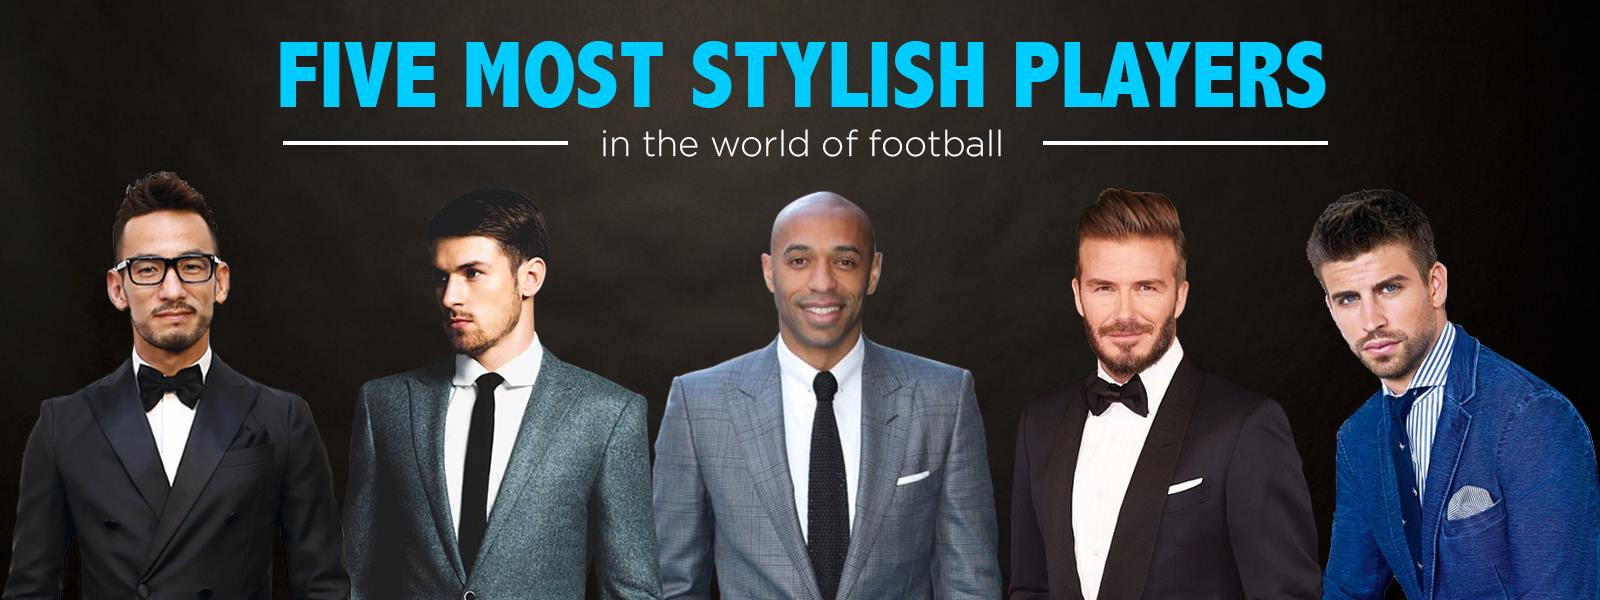 Five most stylish players in the world of football